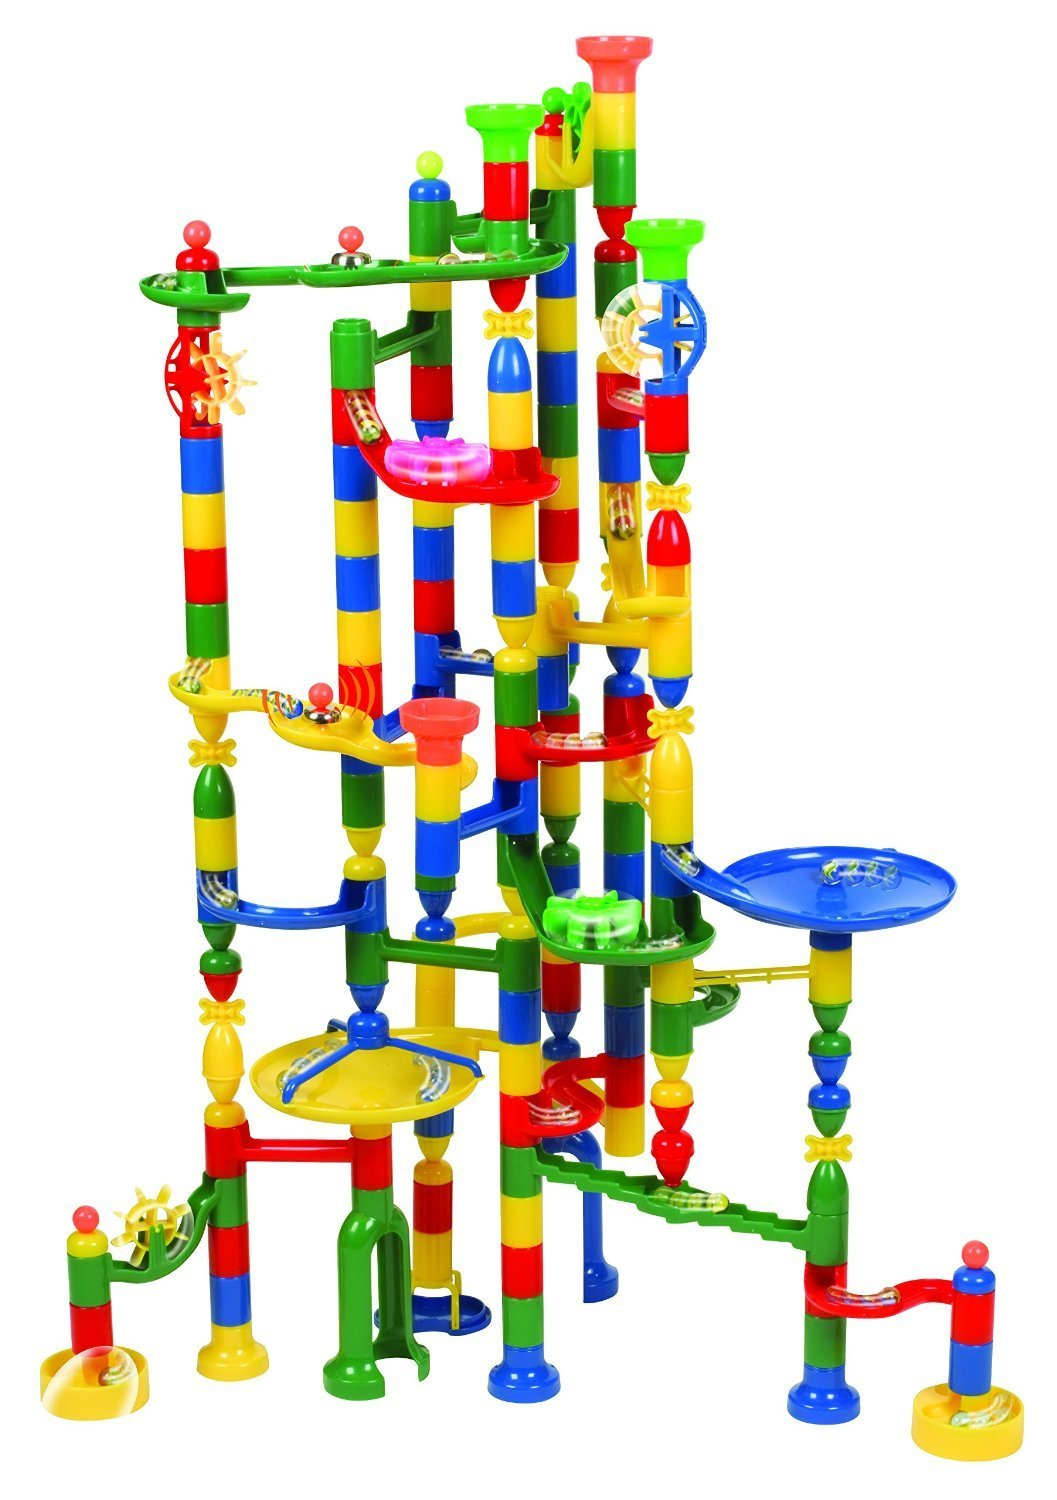 Edushape Marbulous Marble Run Track Set 202 Pieces + 50 Marbles STEM Learning Toy, Educational Construction... by